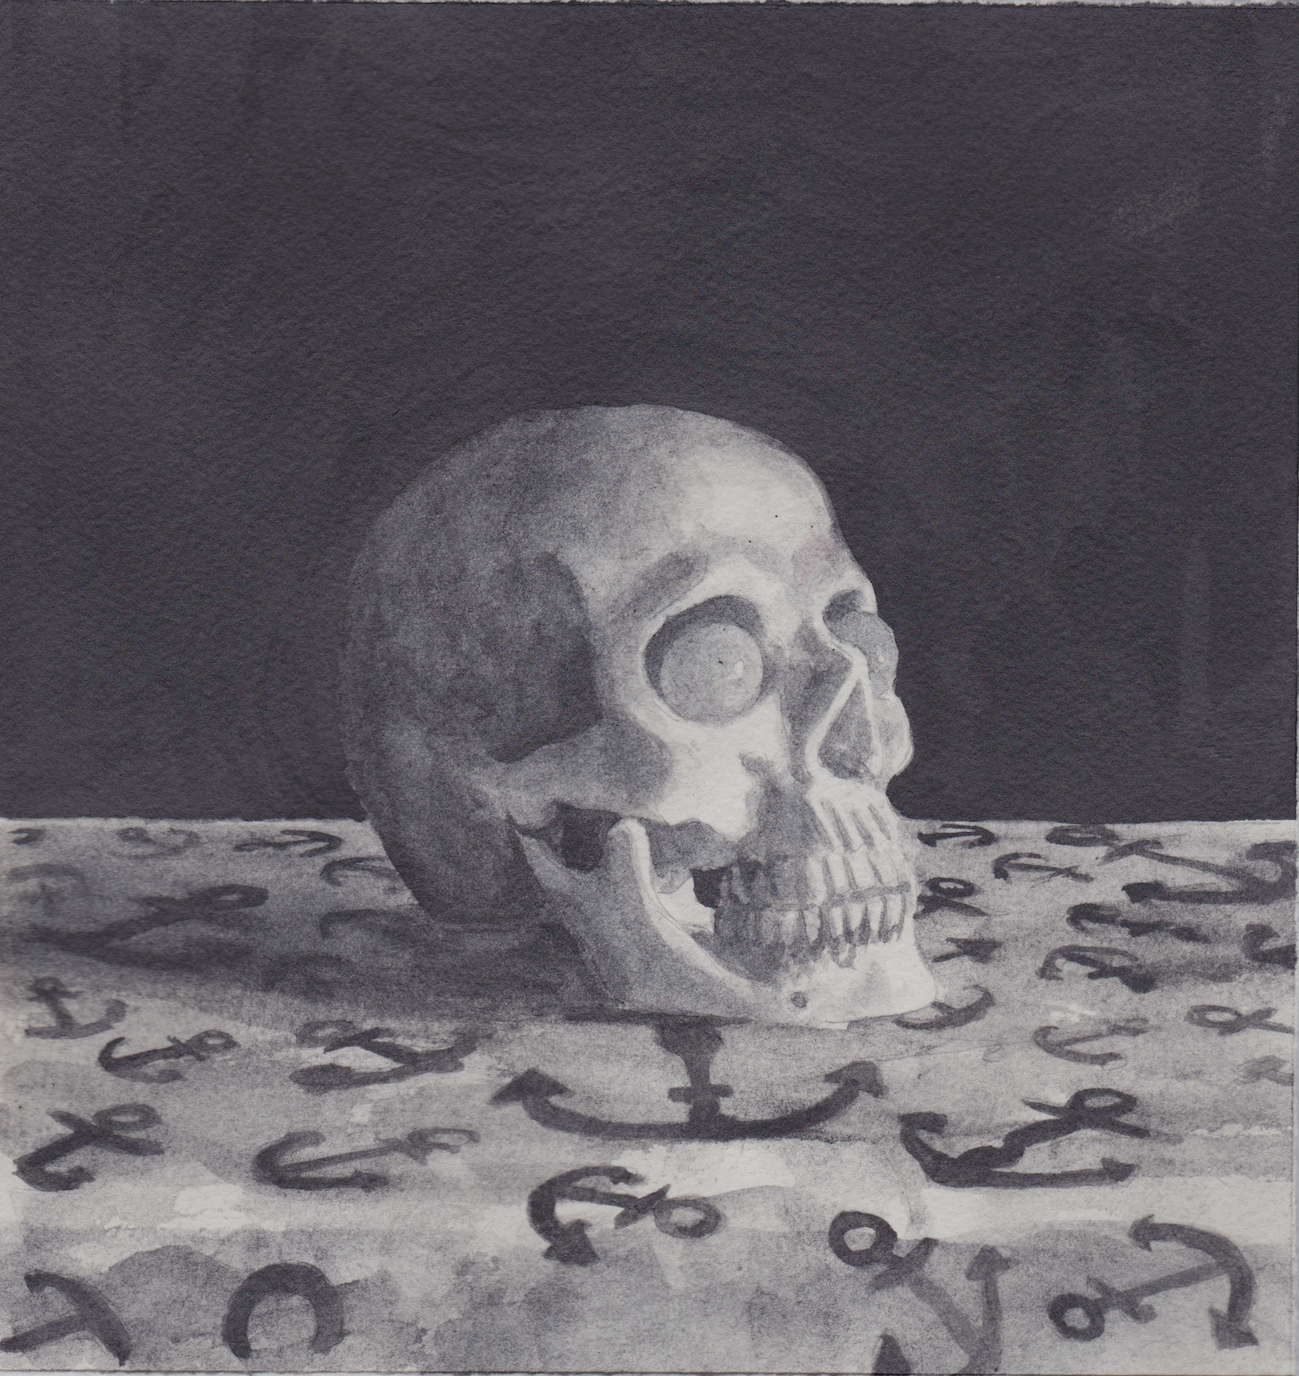 Sailor's Skull - Richard Moon